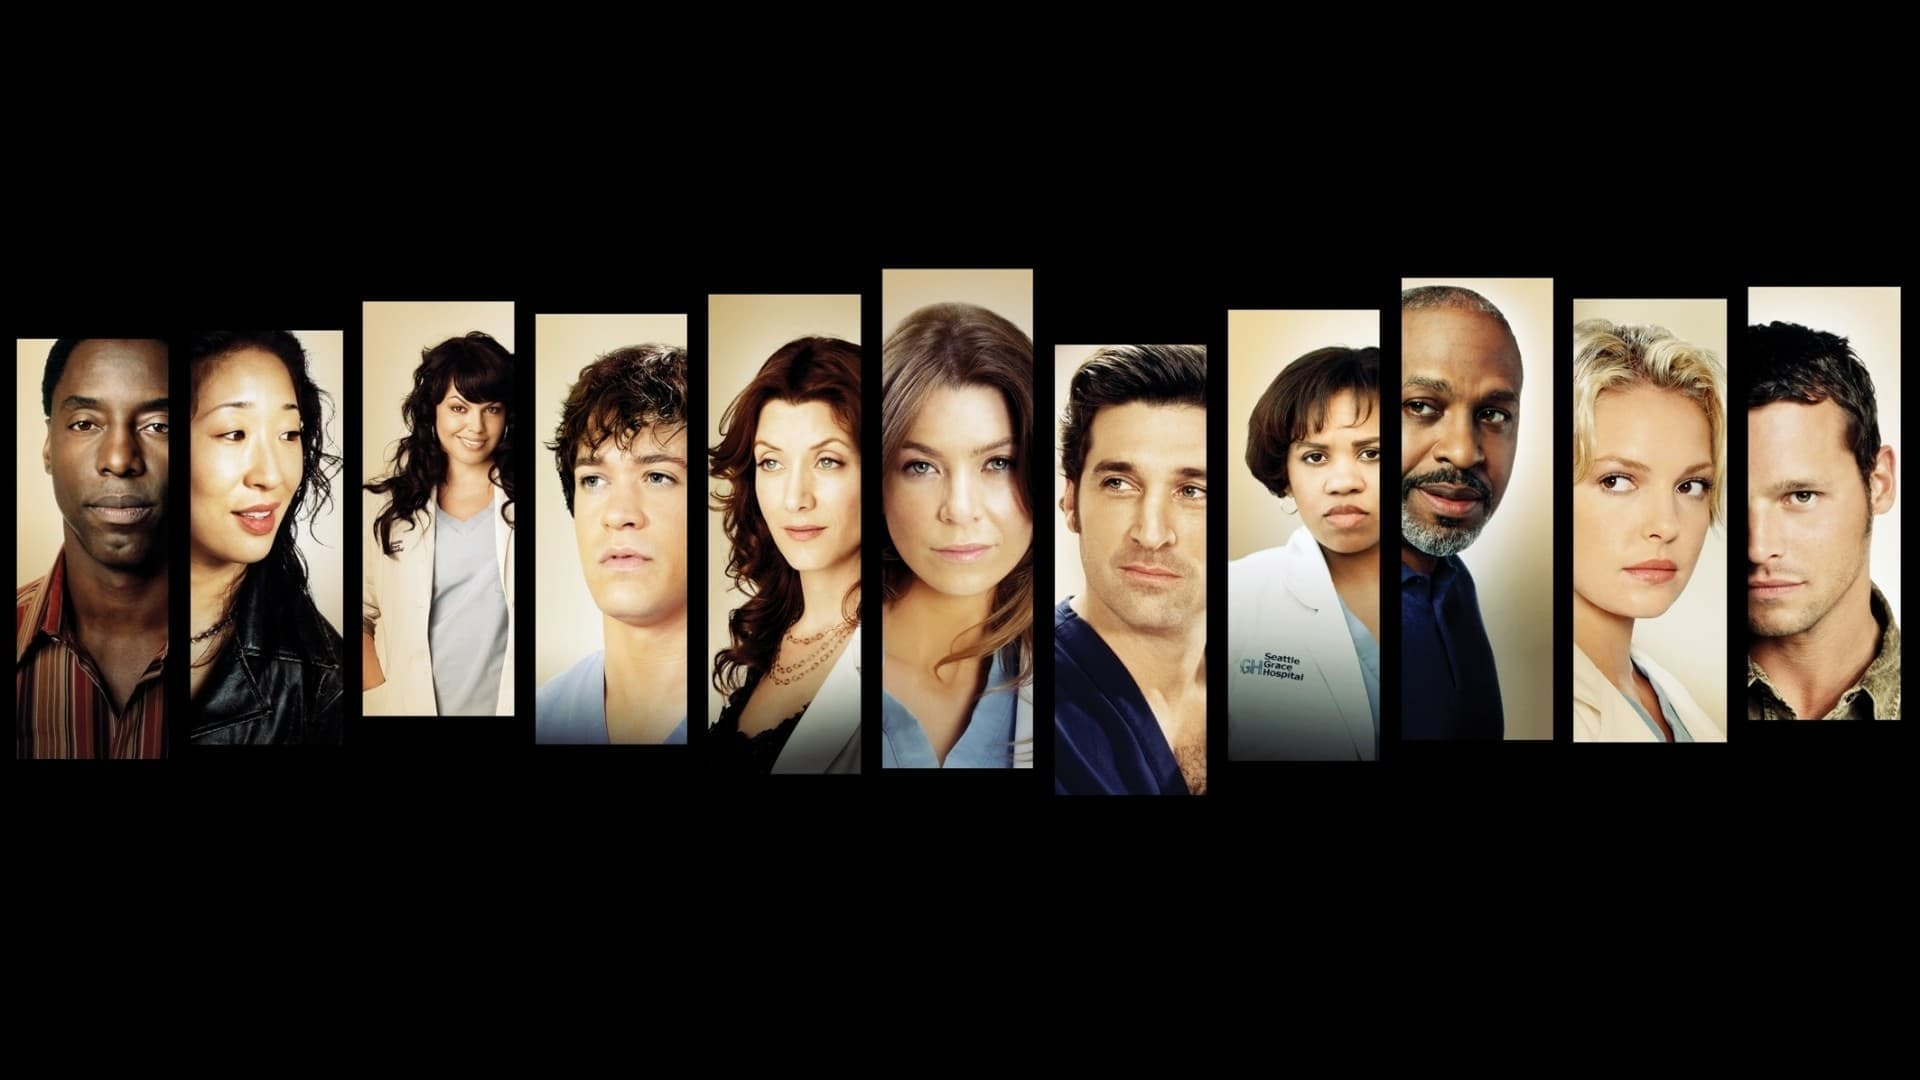 'Grey's Anatomy' brings back two more old characters